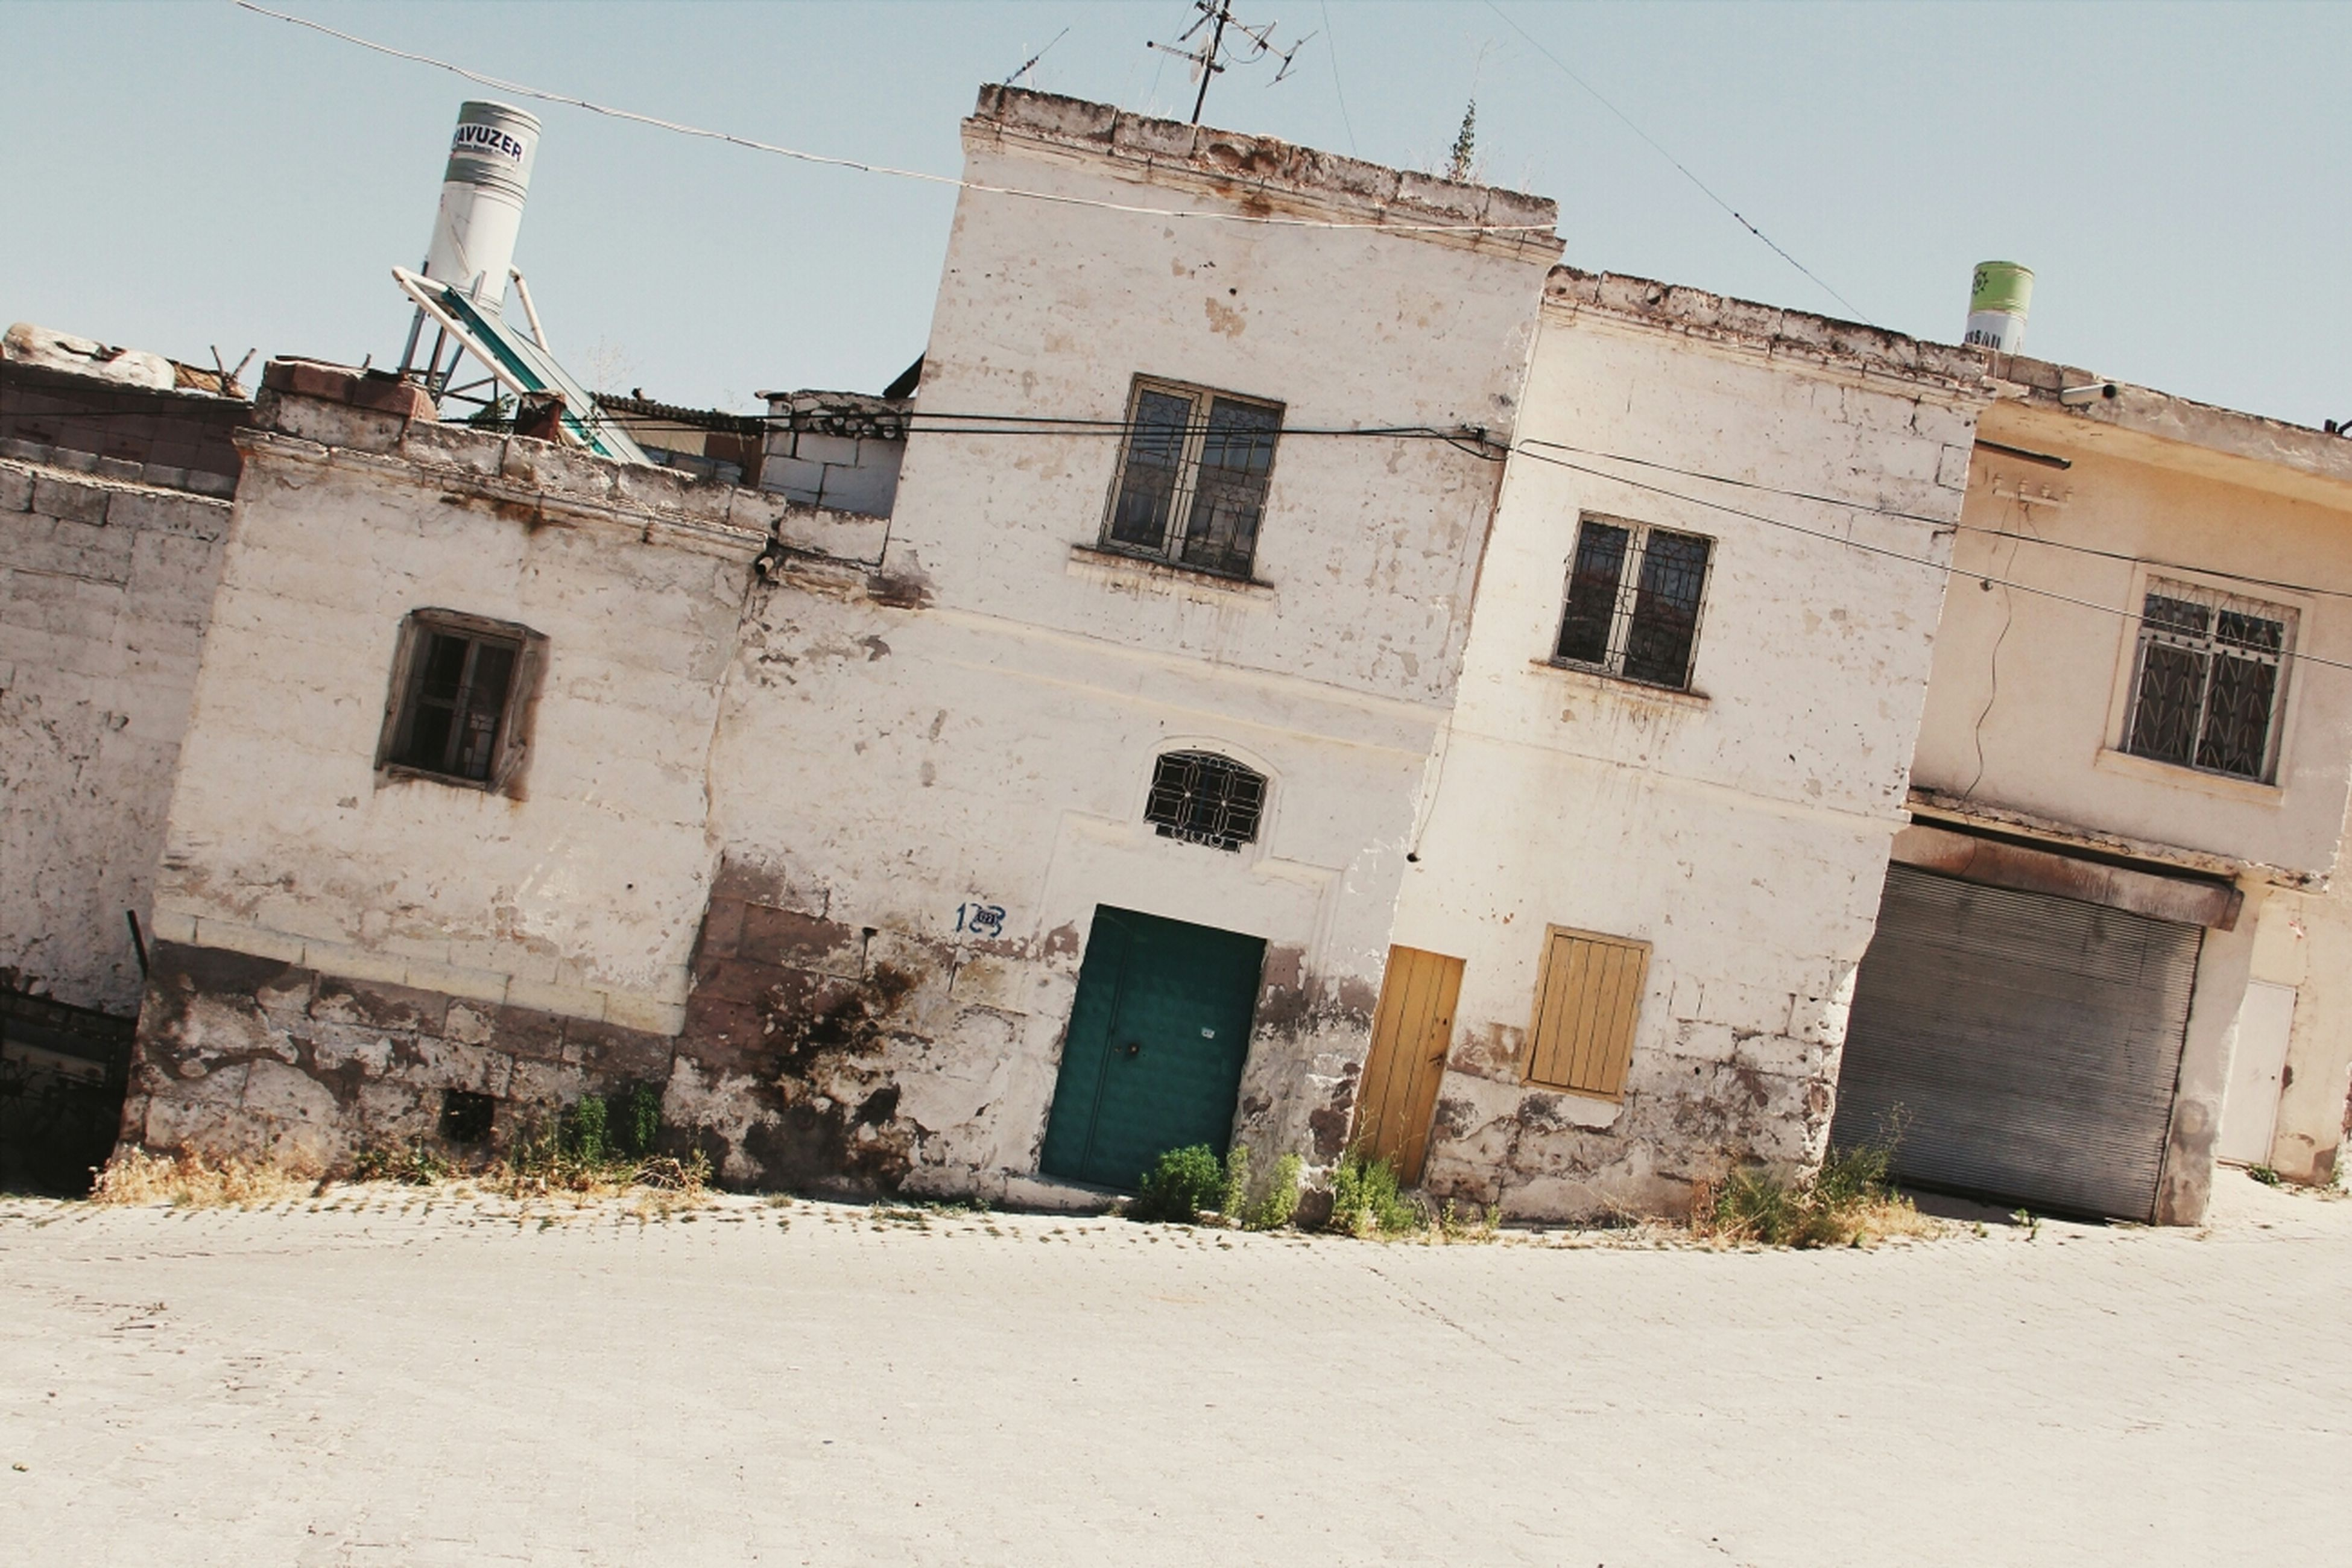 building exterior, architecture, built structure, low angle view, window, old, building, clear sky, residential building, residential structure, house, abandoned, damaged, obsolete, sky, weathered, day, run-down, outdoors, sunlight